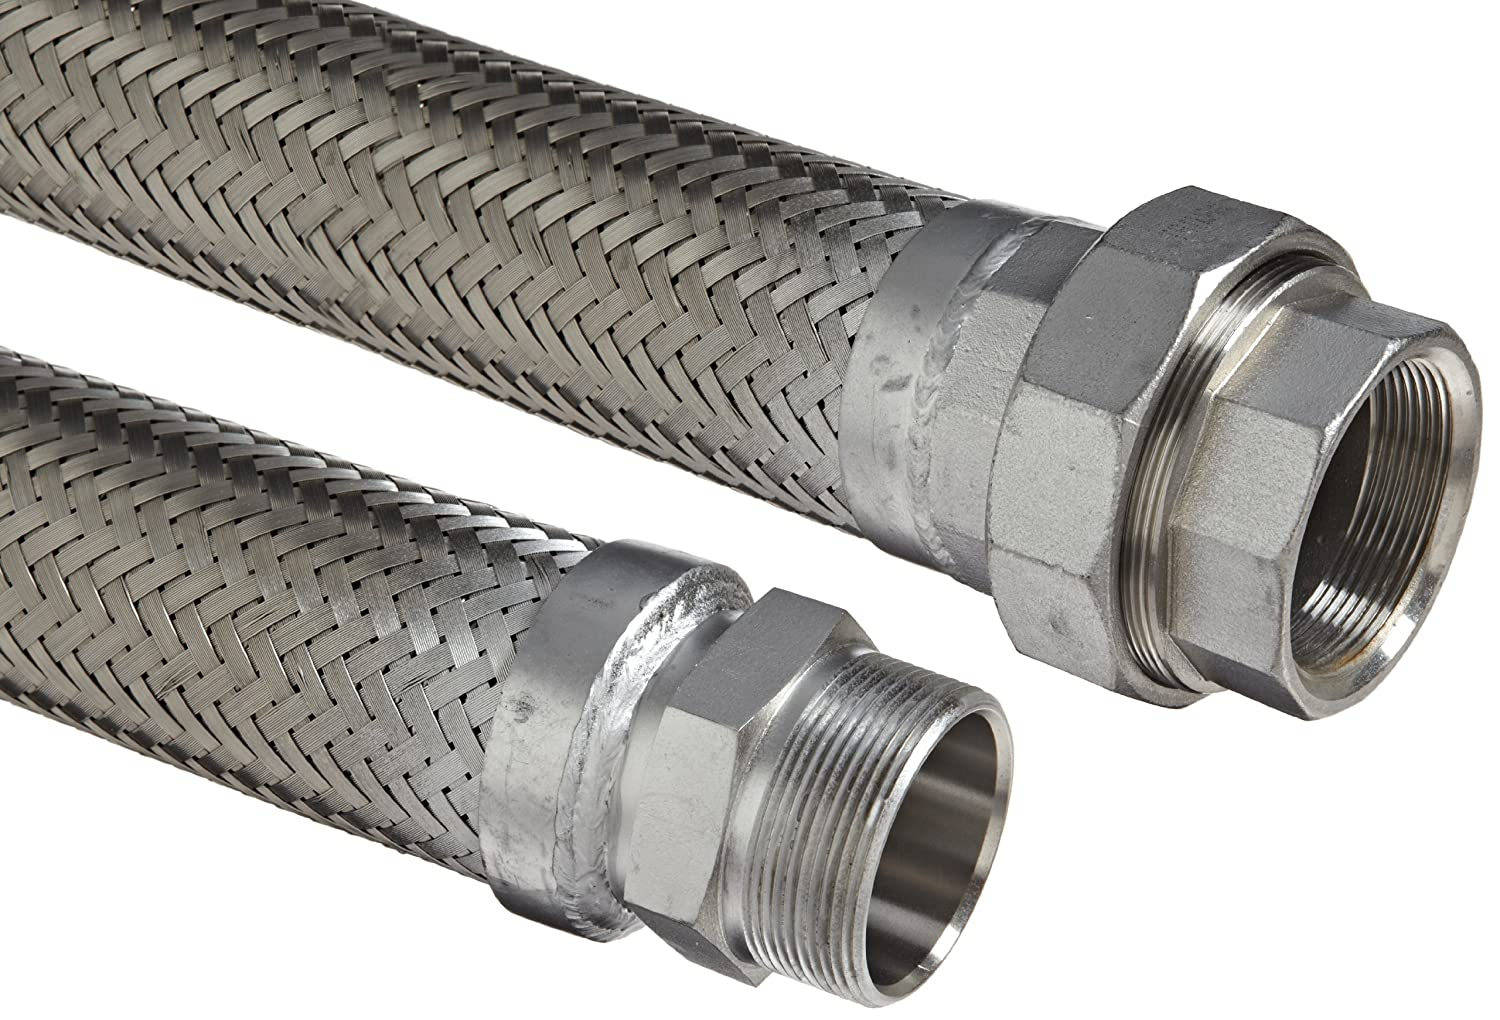 Our shop OFFers the best service Hose Master Rare Masterflex Stainless 321 Steel Assembl Flexible